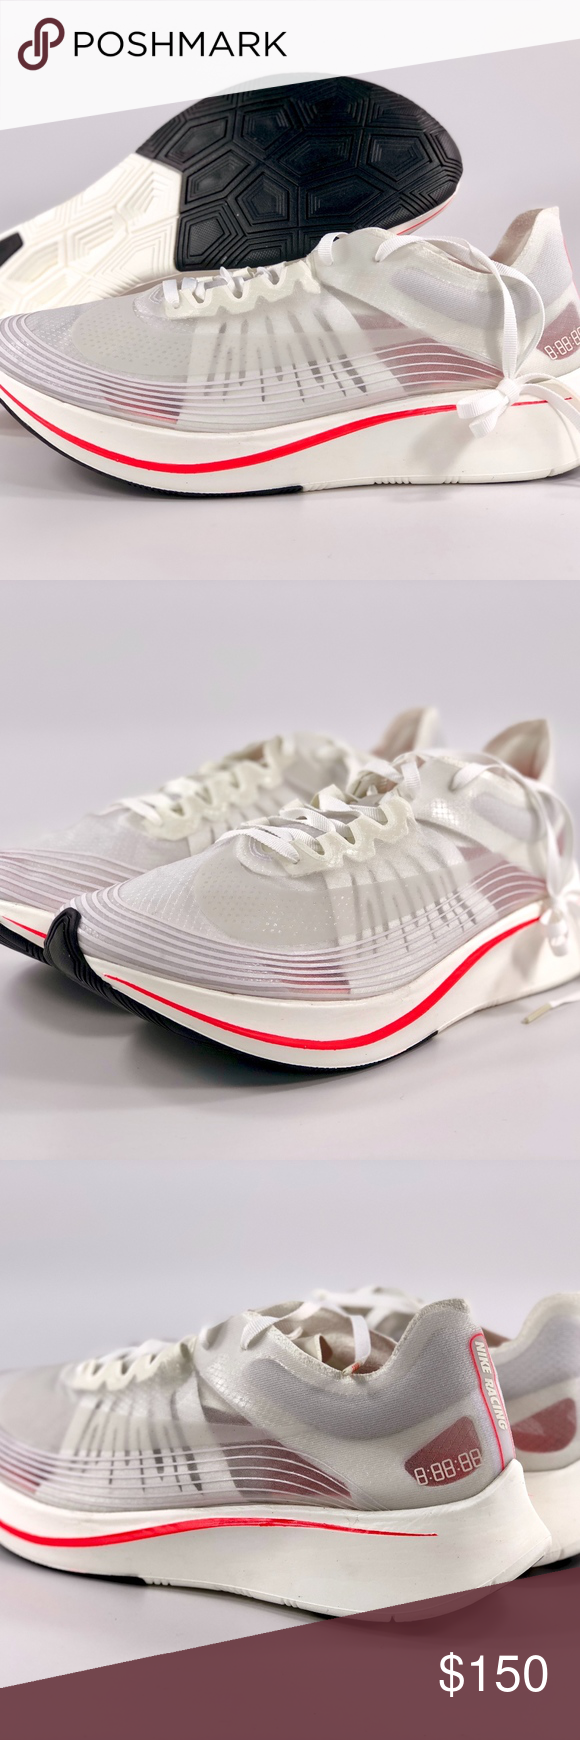 8bf30acbb2a68 Nike Zoom Fly SP Breaking 2 White Sail Crimson Nike Zoom Fly SP Breaking 2  White